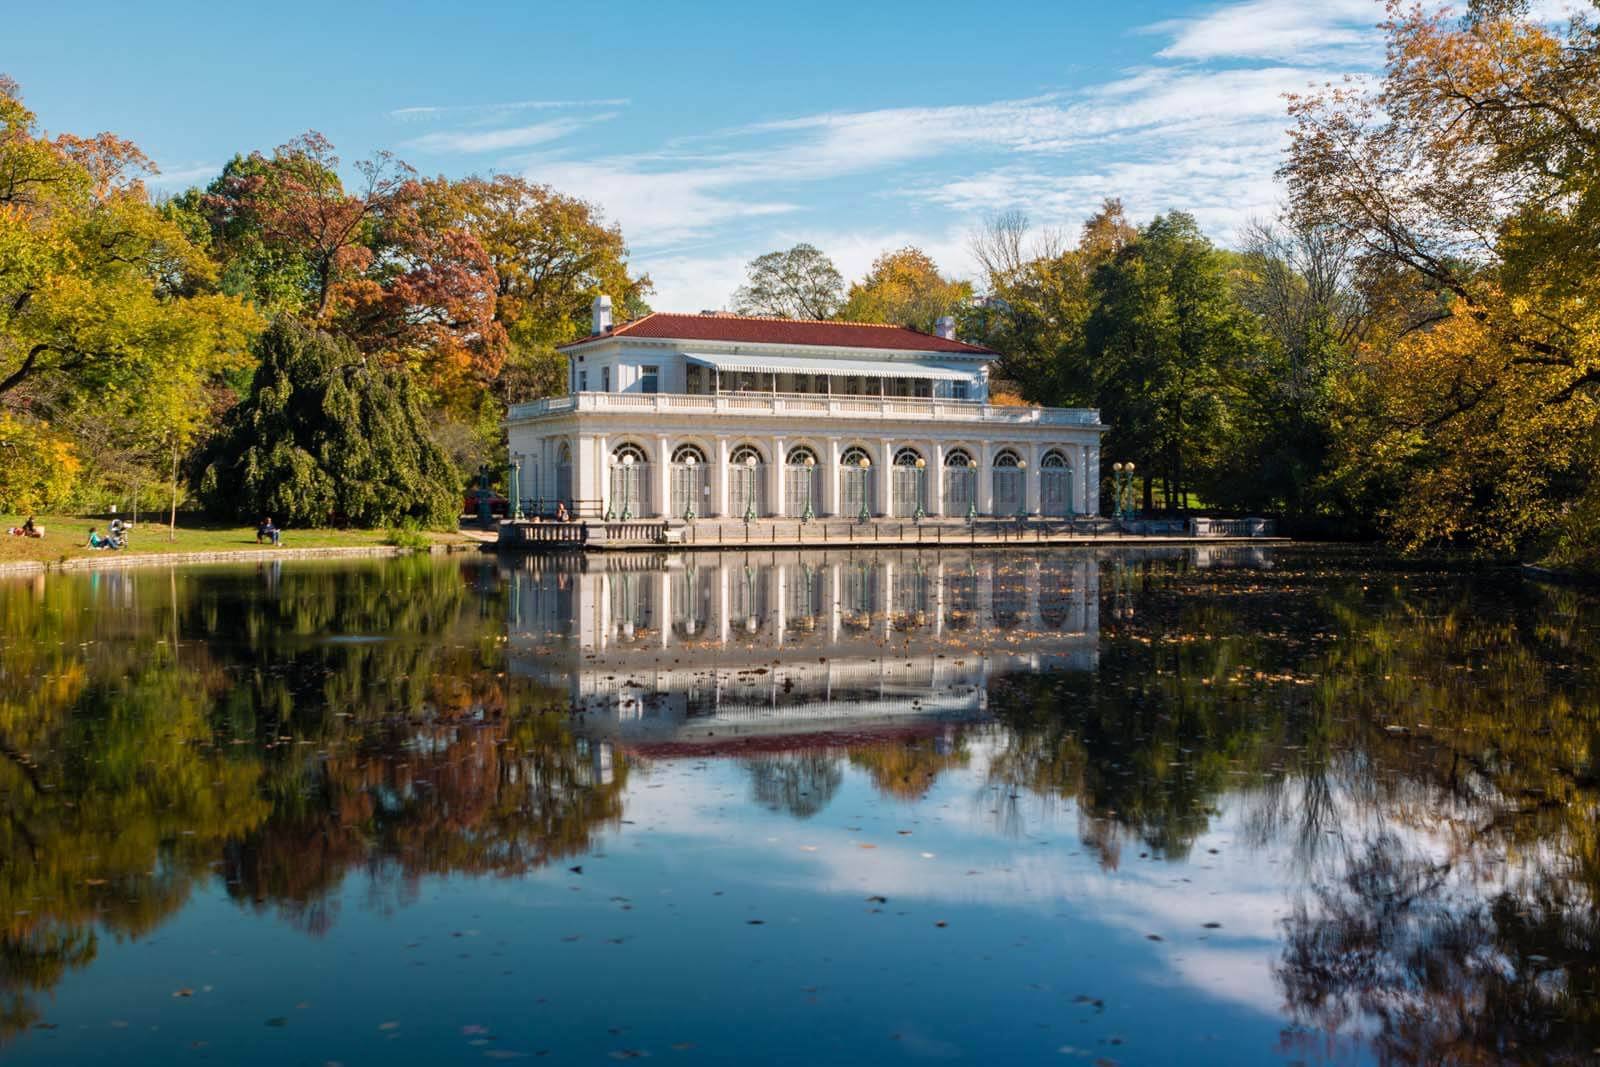 Prospect Park Boathouse in Brooklyn